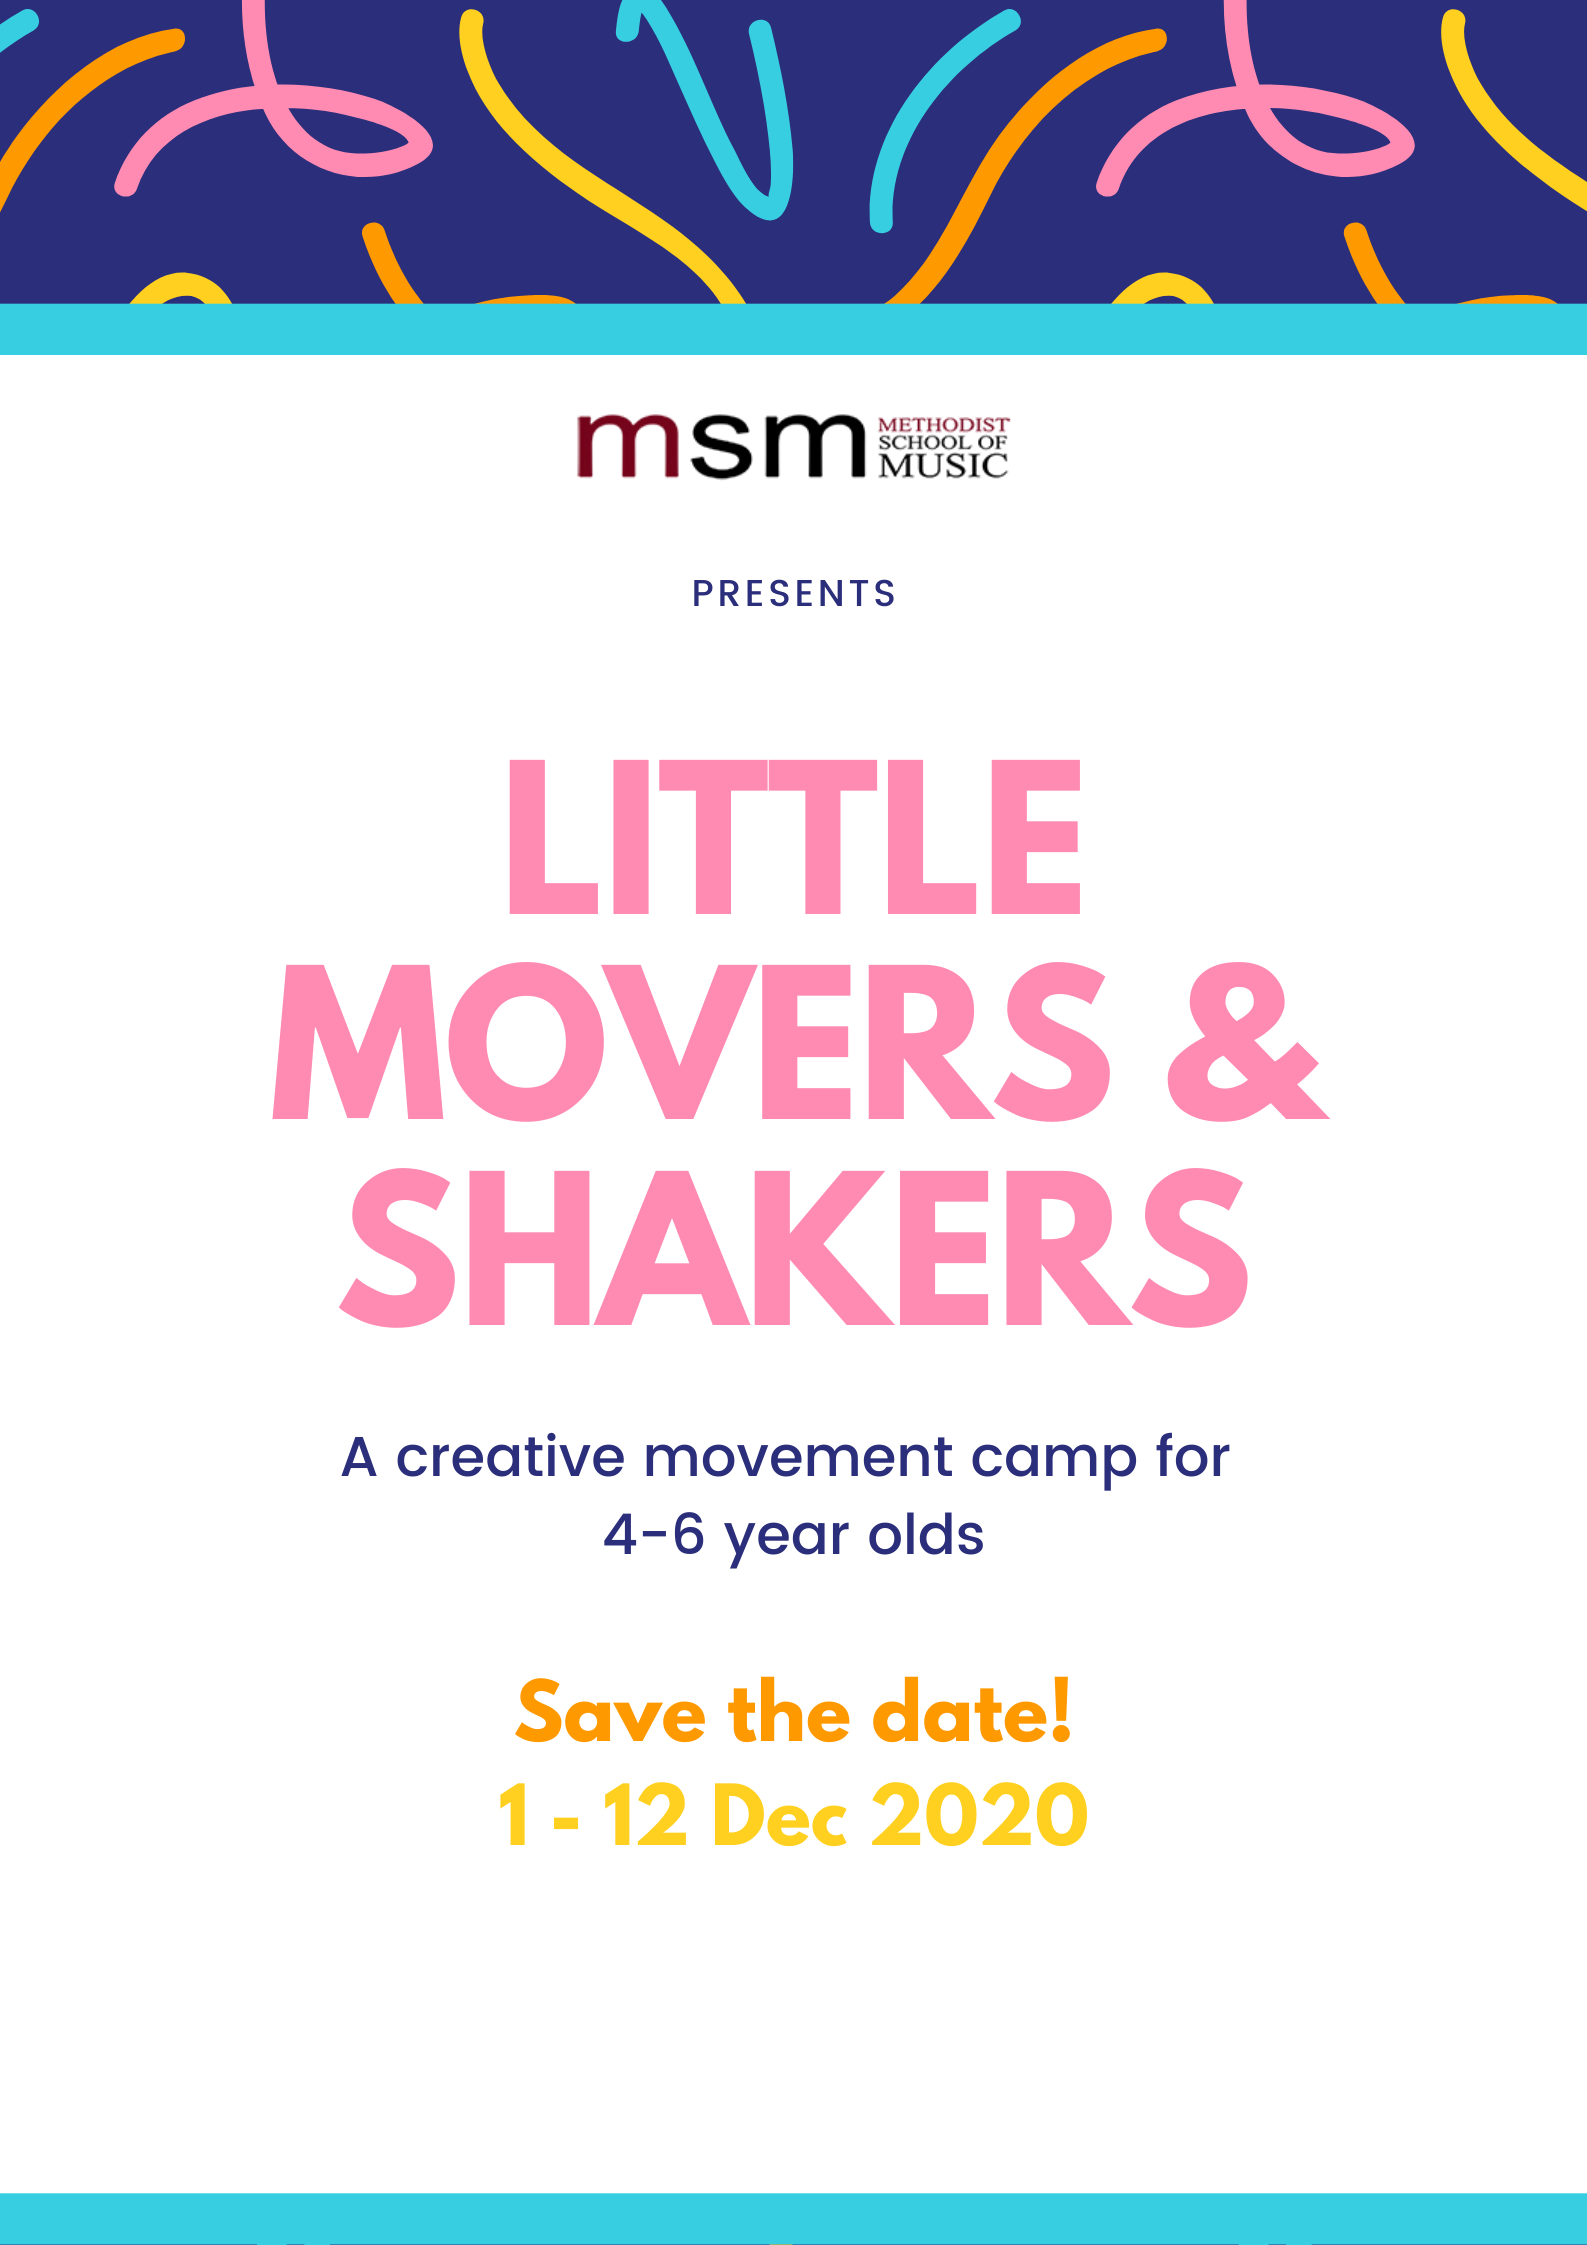 Little Movers & Shakers